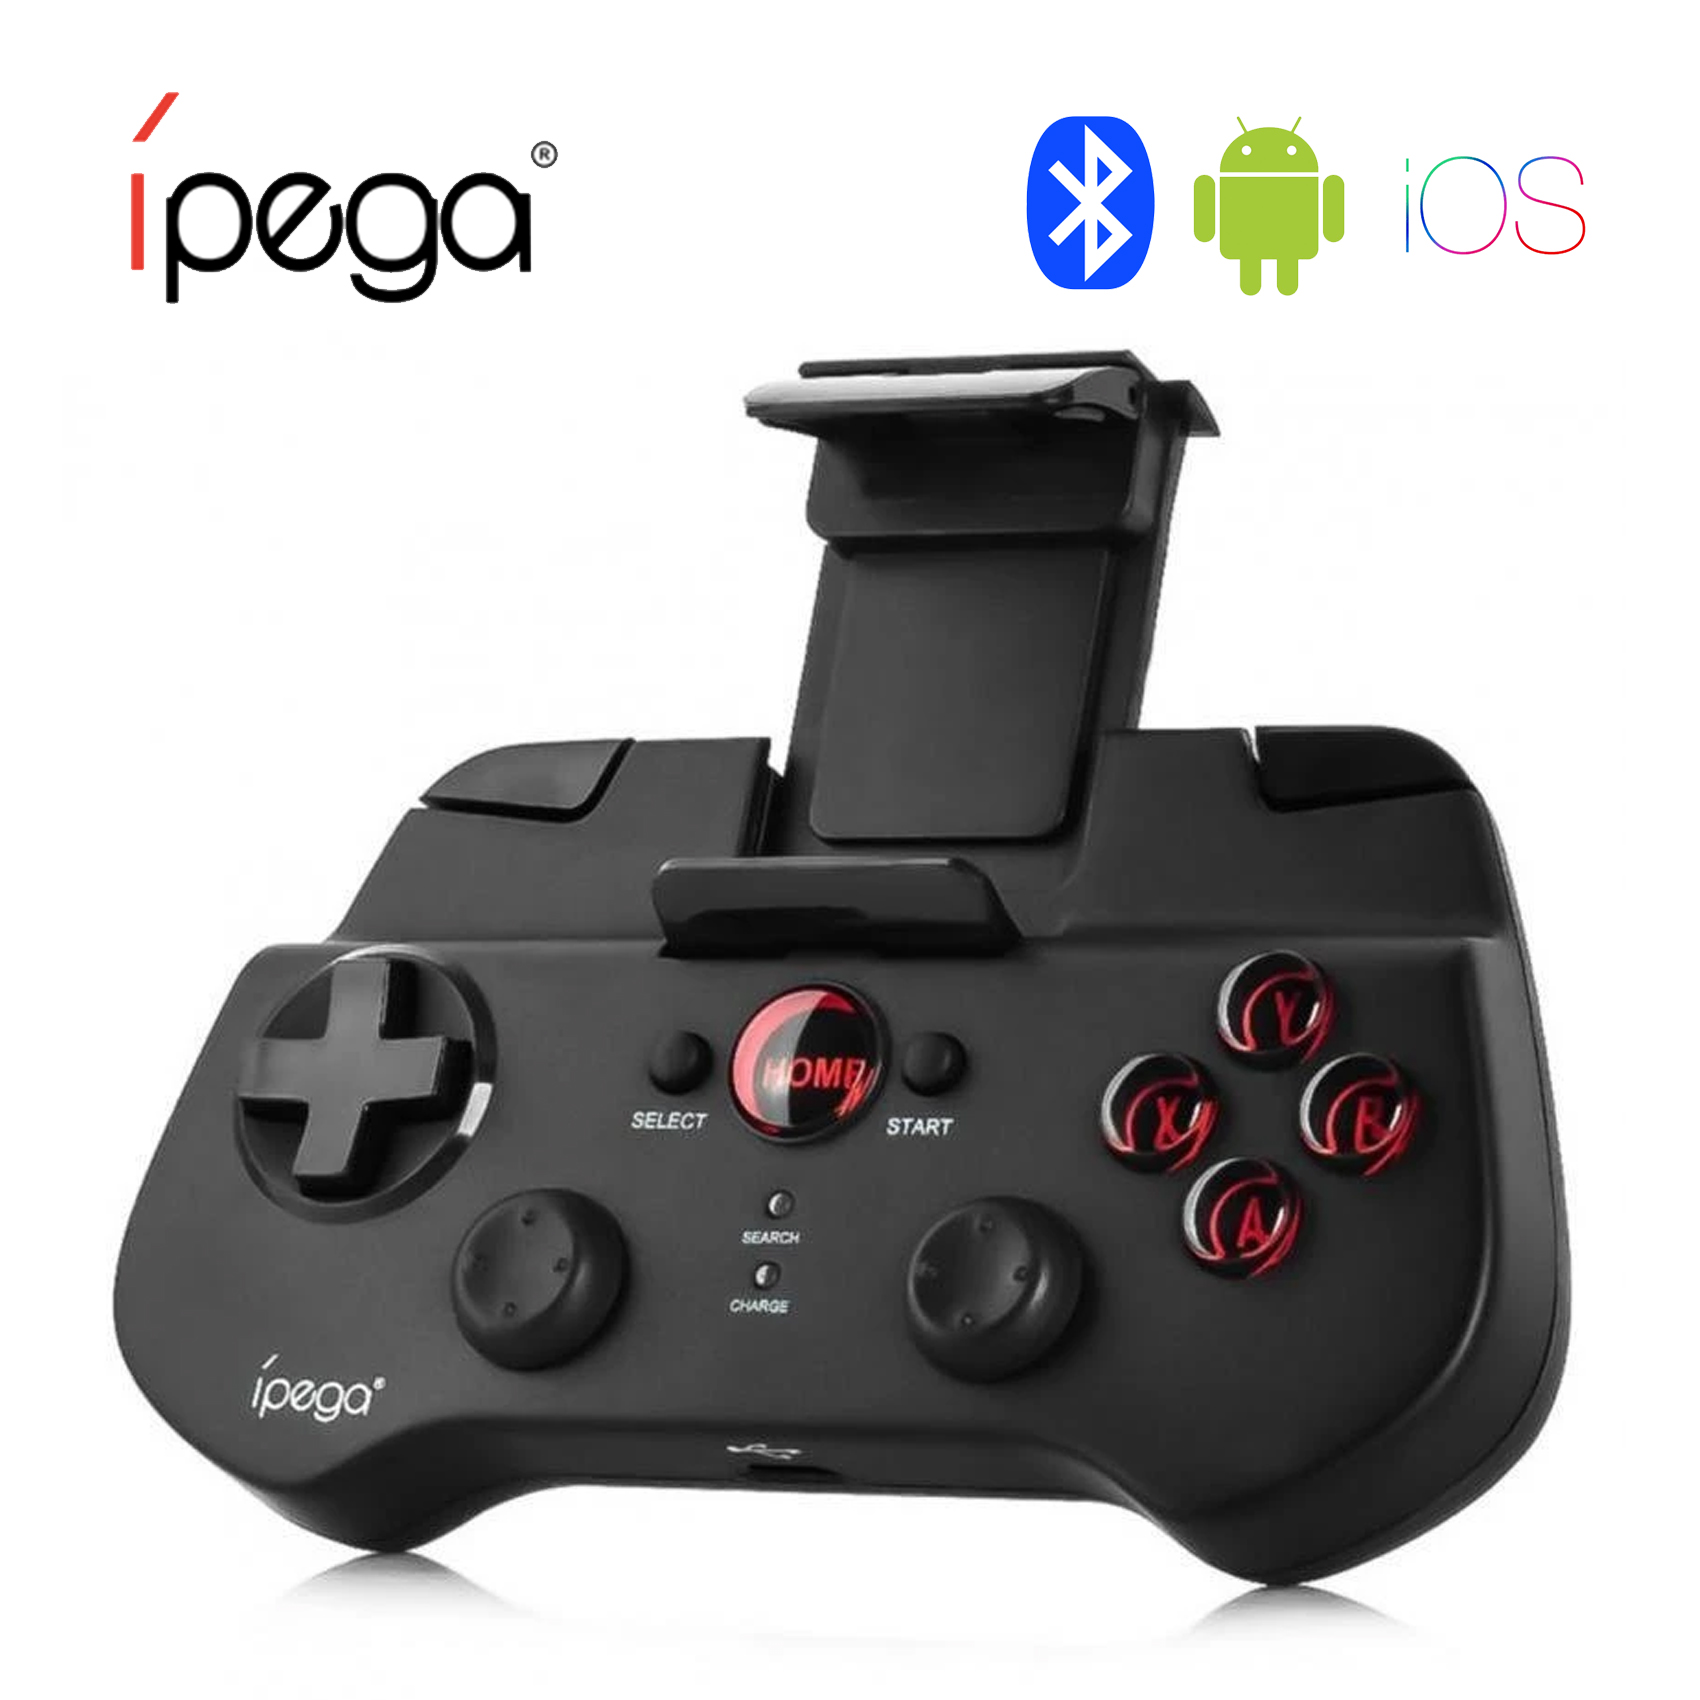 Ipega Bluetooh Game Controller For Smartphones